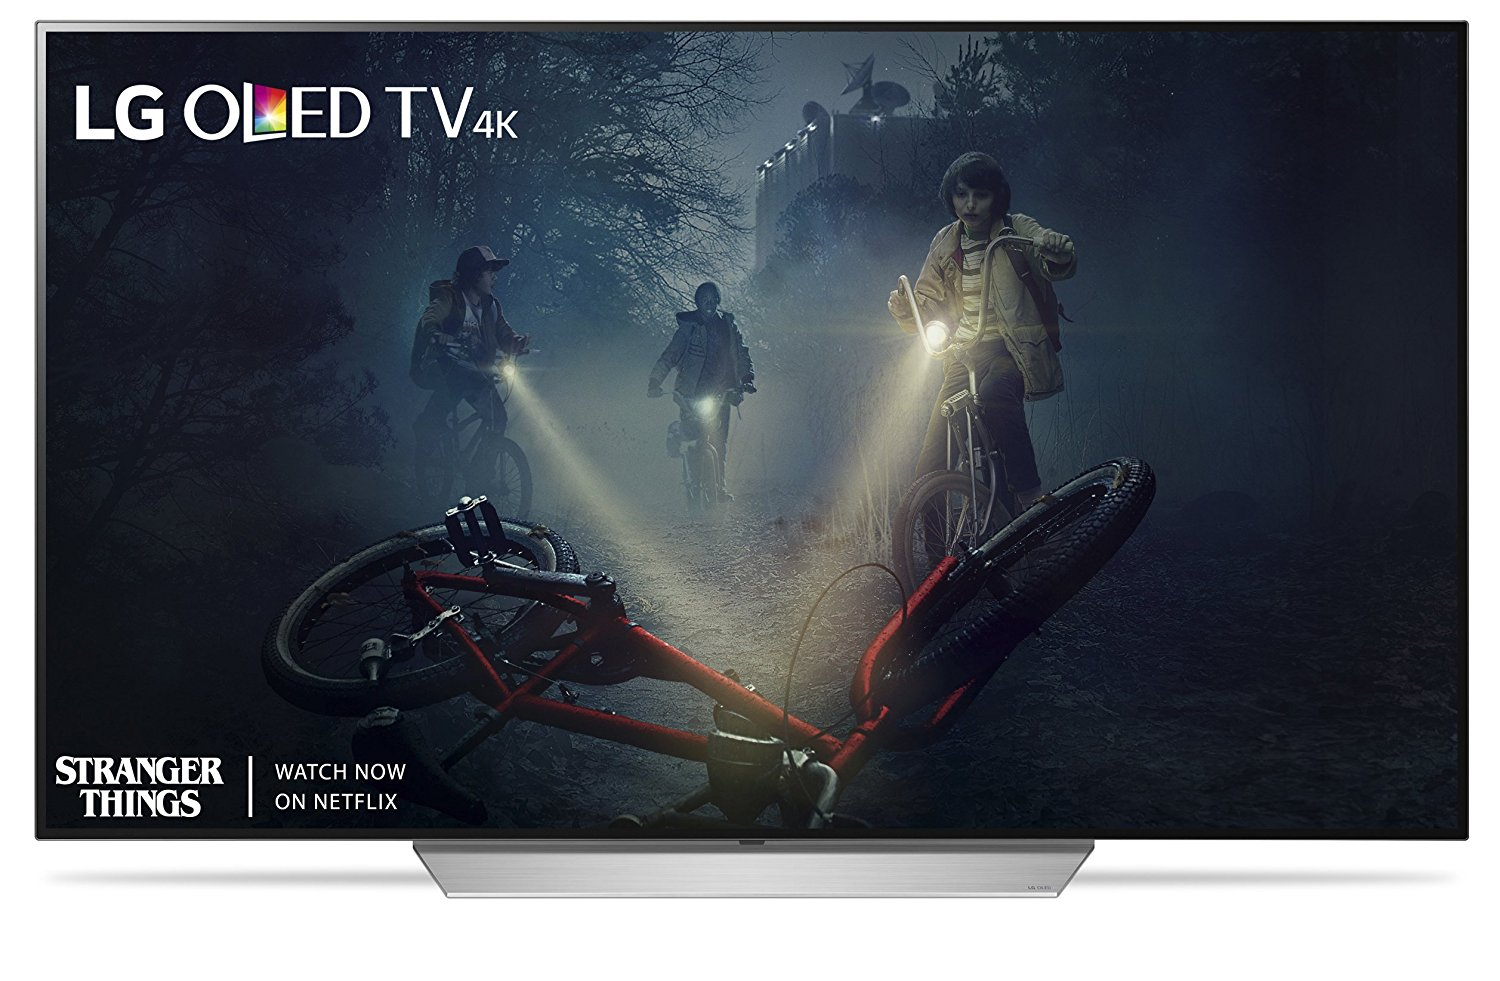 The larger [LG C7 OLED 65-inch TV](https://www.amazon.com/dp/B01NAYM1TP?tag=toolstoysdeals-20) is also on sale, down to a new low price shortly after launch.